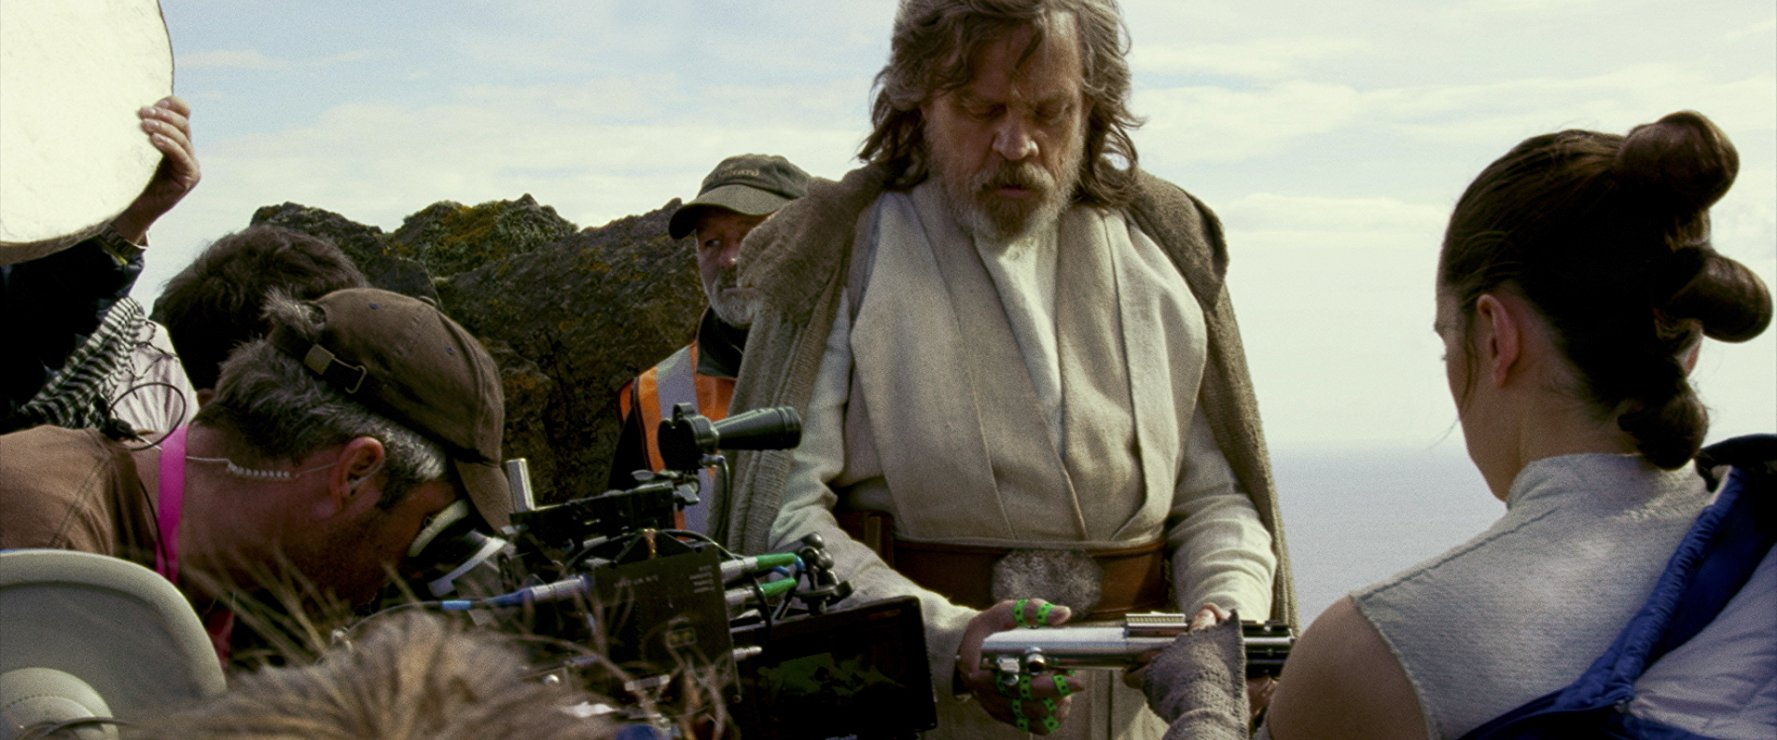 Star Wars: The Last Jedi, coming out next month, is particularly important for Luke Skywalker